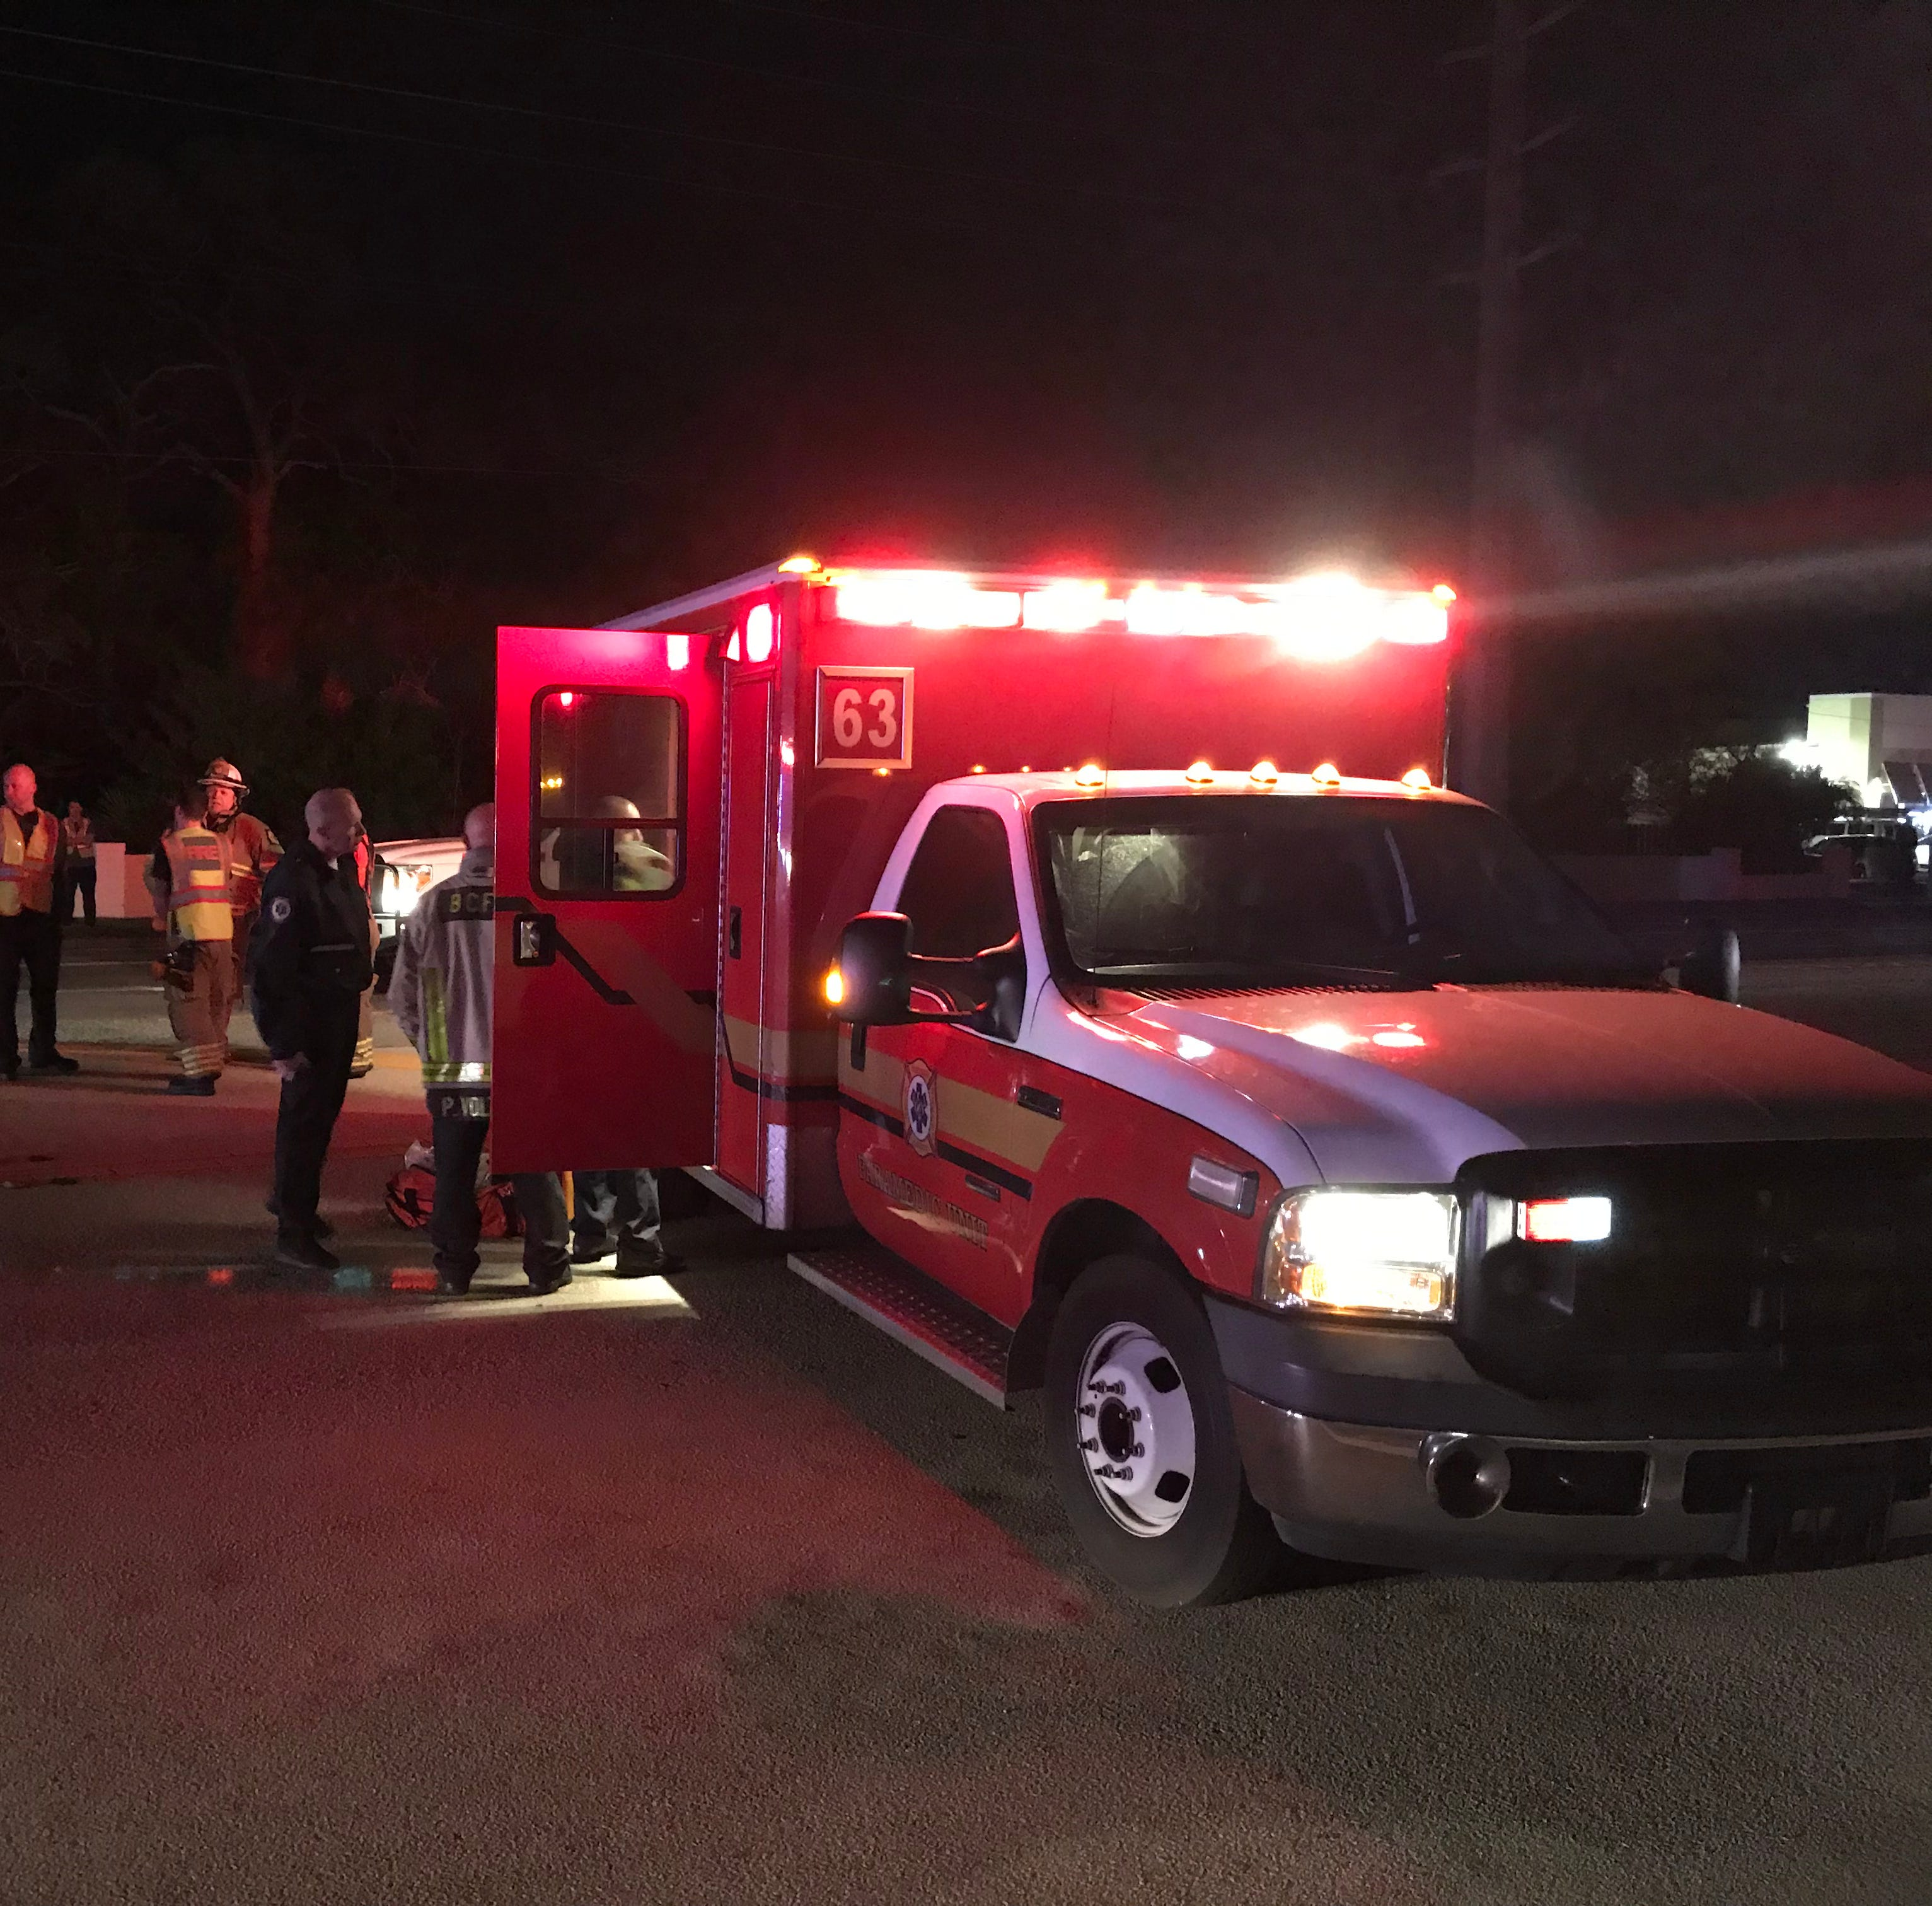 2 children struck by vehicle during Santa Run event in Indian Harbour Beach